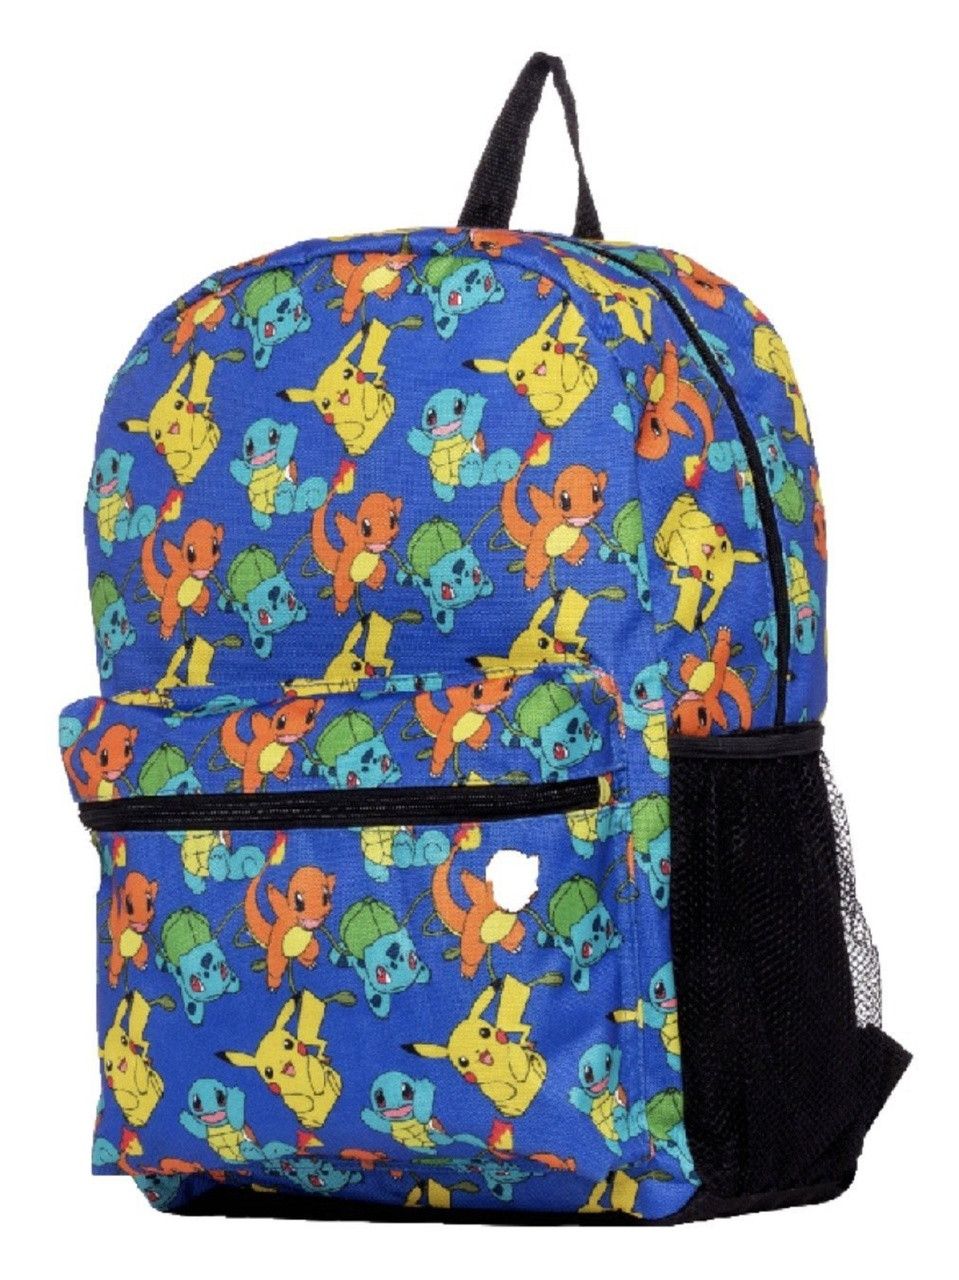 Backpack - Pokemon - Large 16 Inches - Charmander Pikachu Squirtle